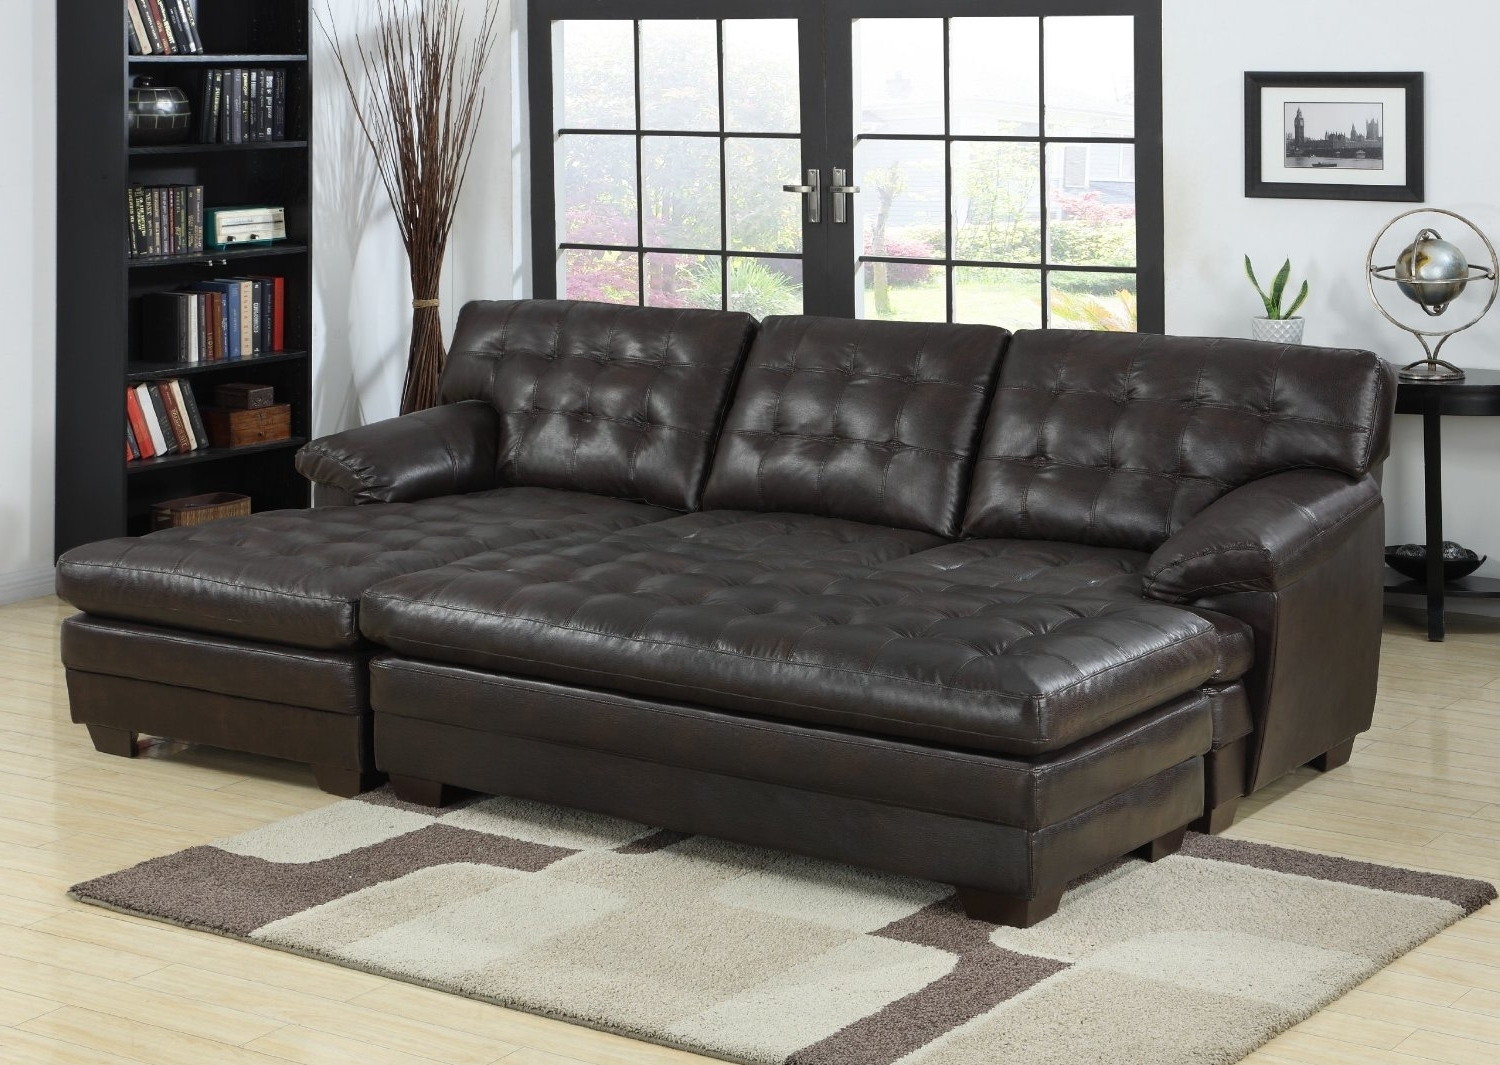 Luxury Double Chaise Lounge Sofa 92 About Remodel Sofas And For Well Liked Two Person Chaise Lounges (View 7 of 15)